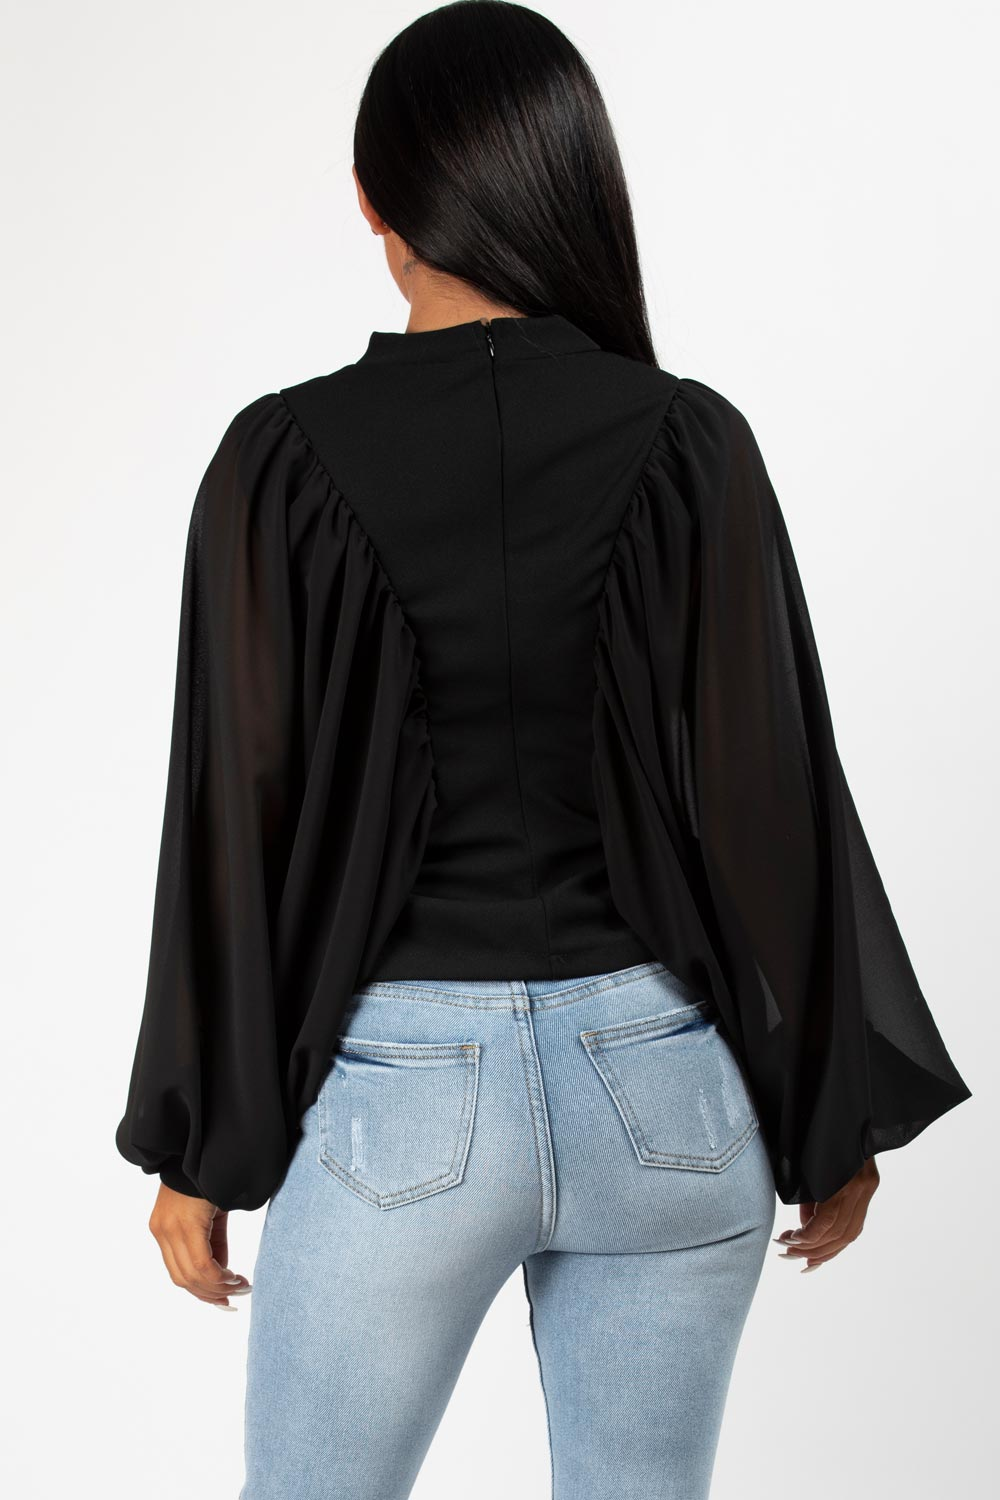 batwing chiffon sleeve top black